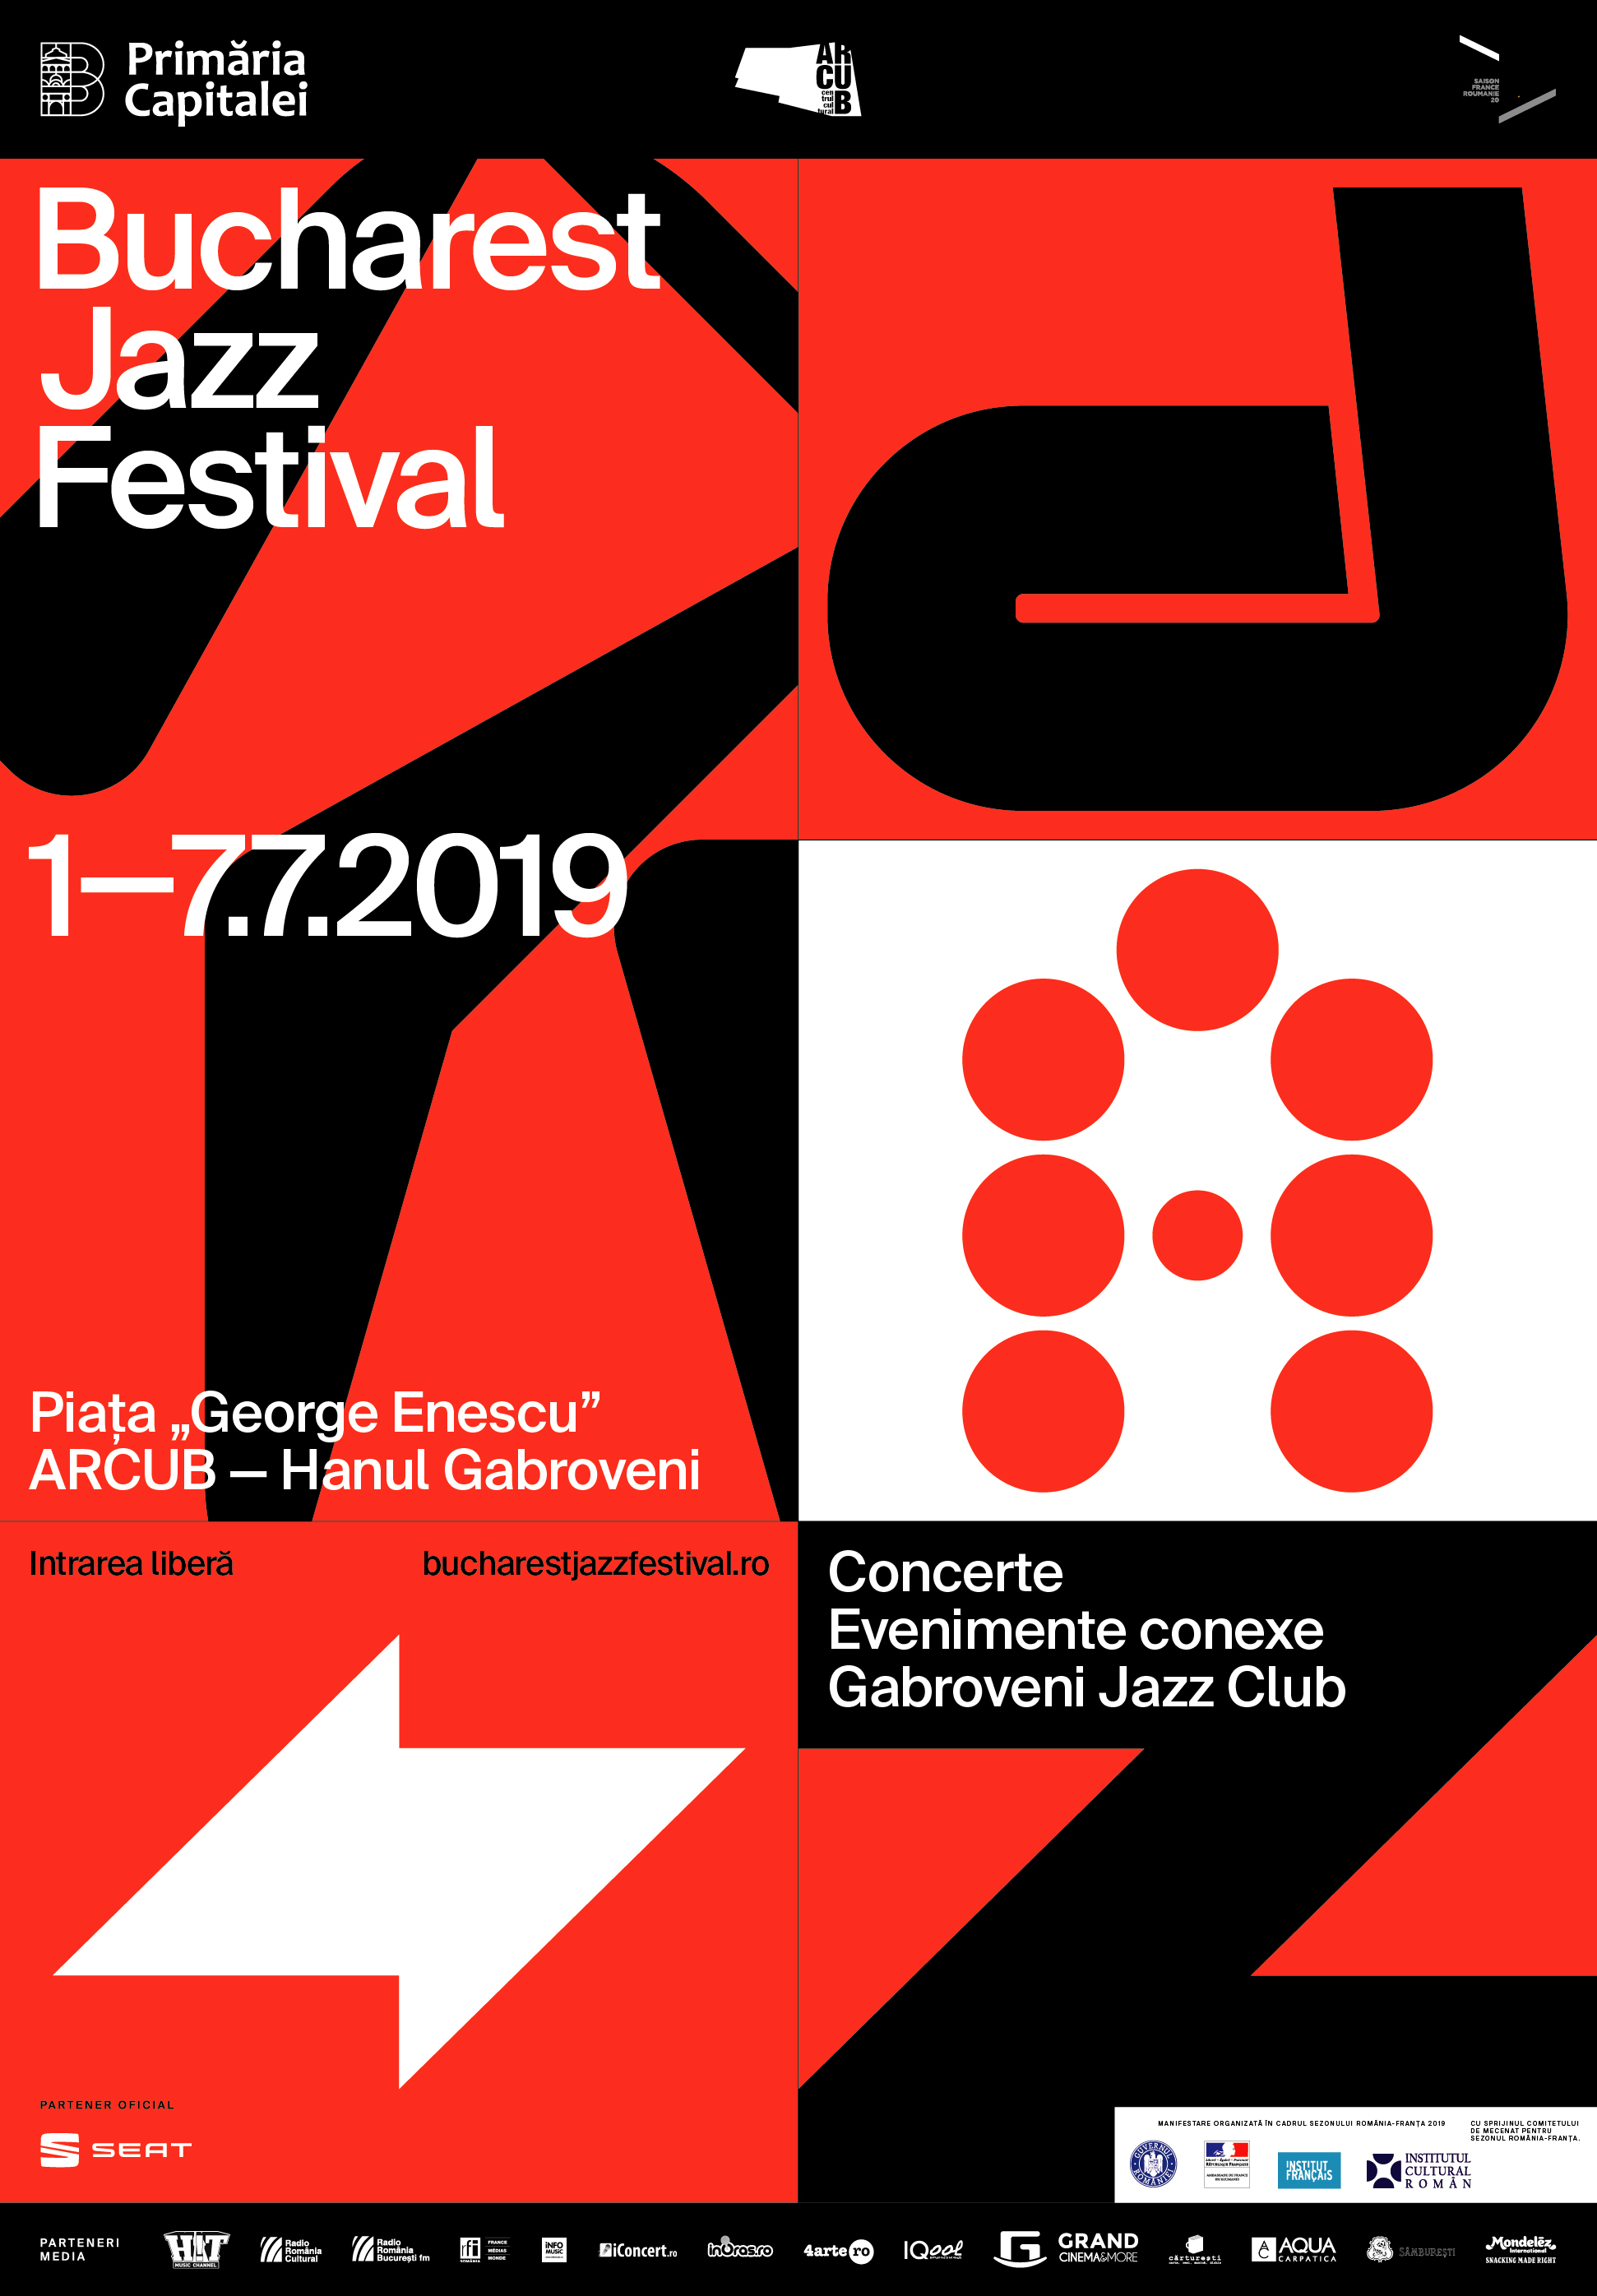 Bucharest Jazz Festival 2019 – Stiri Arcub